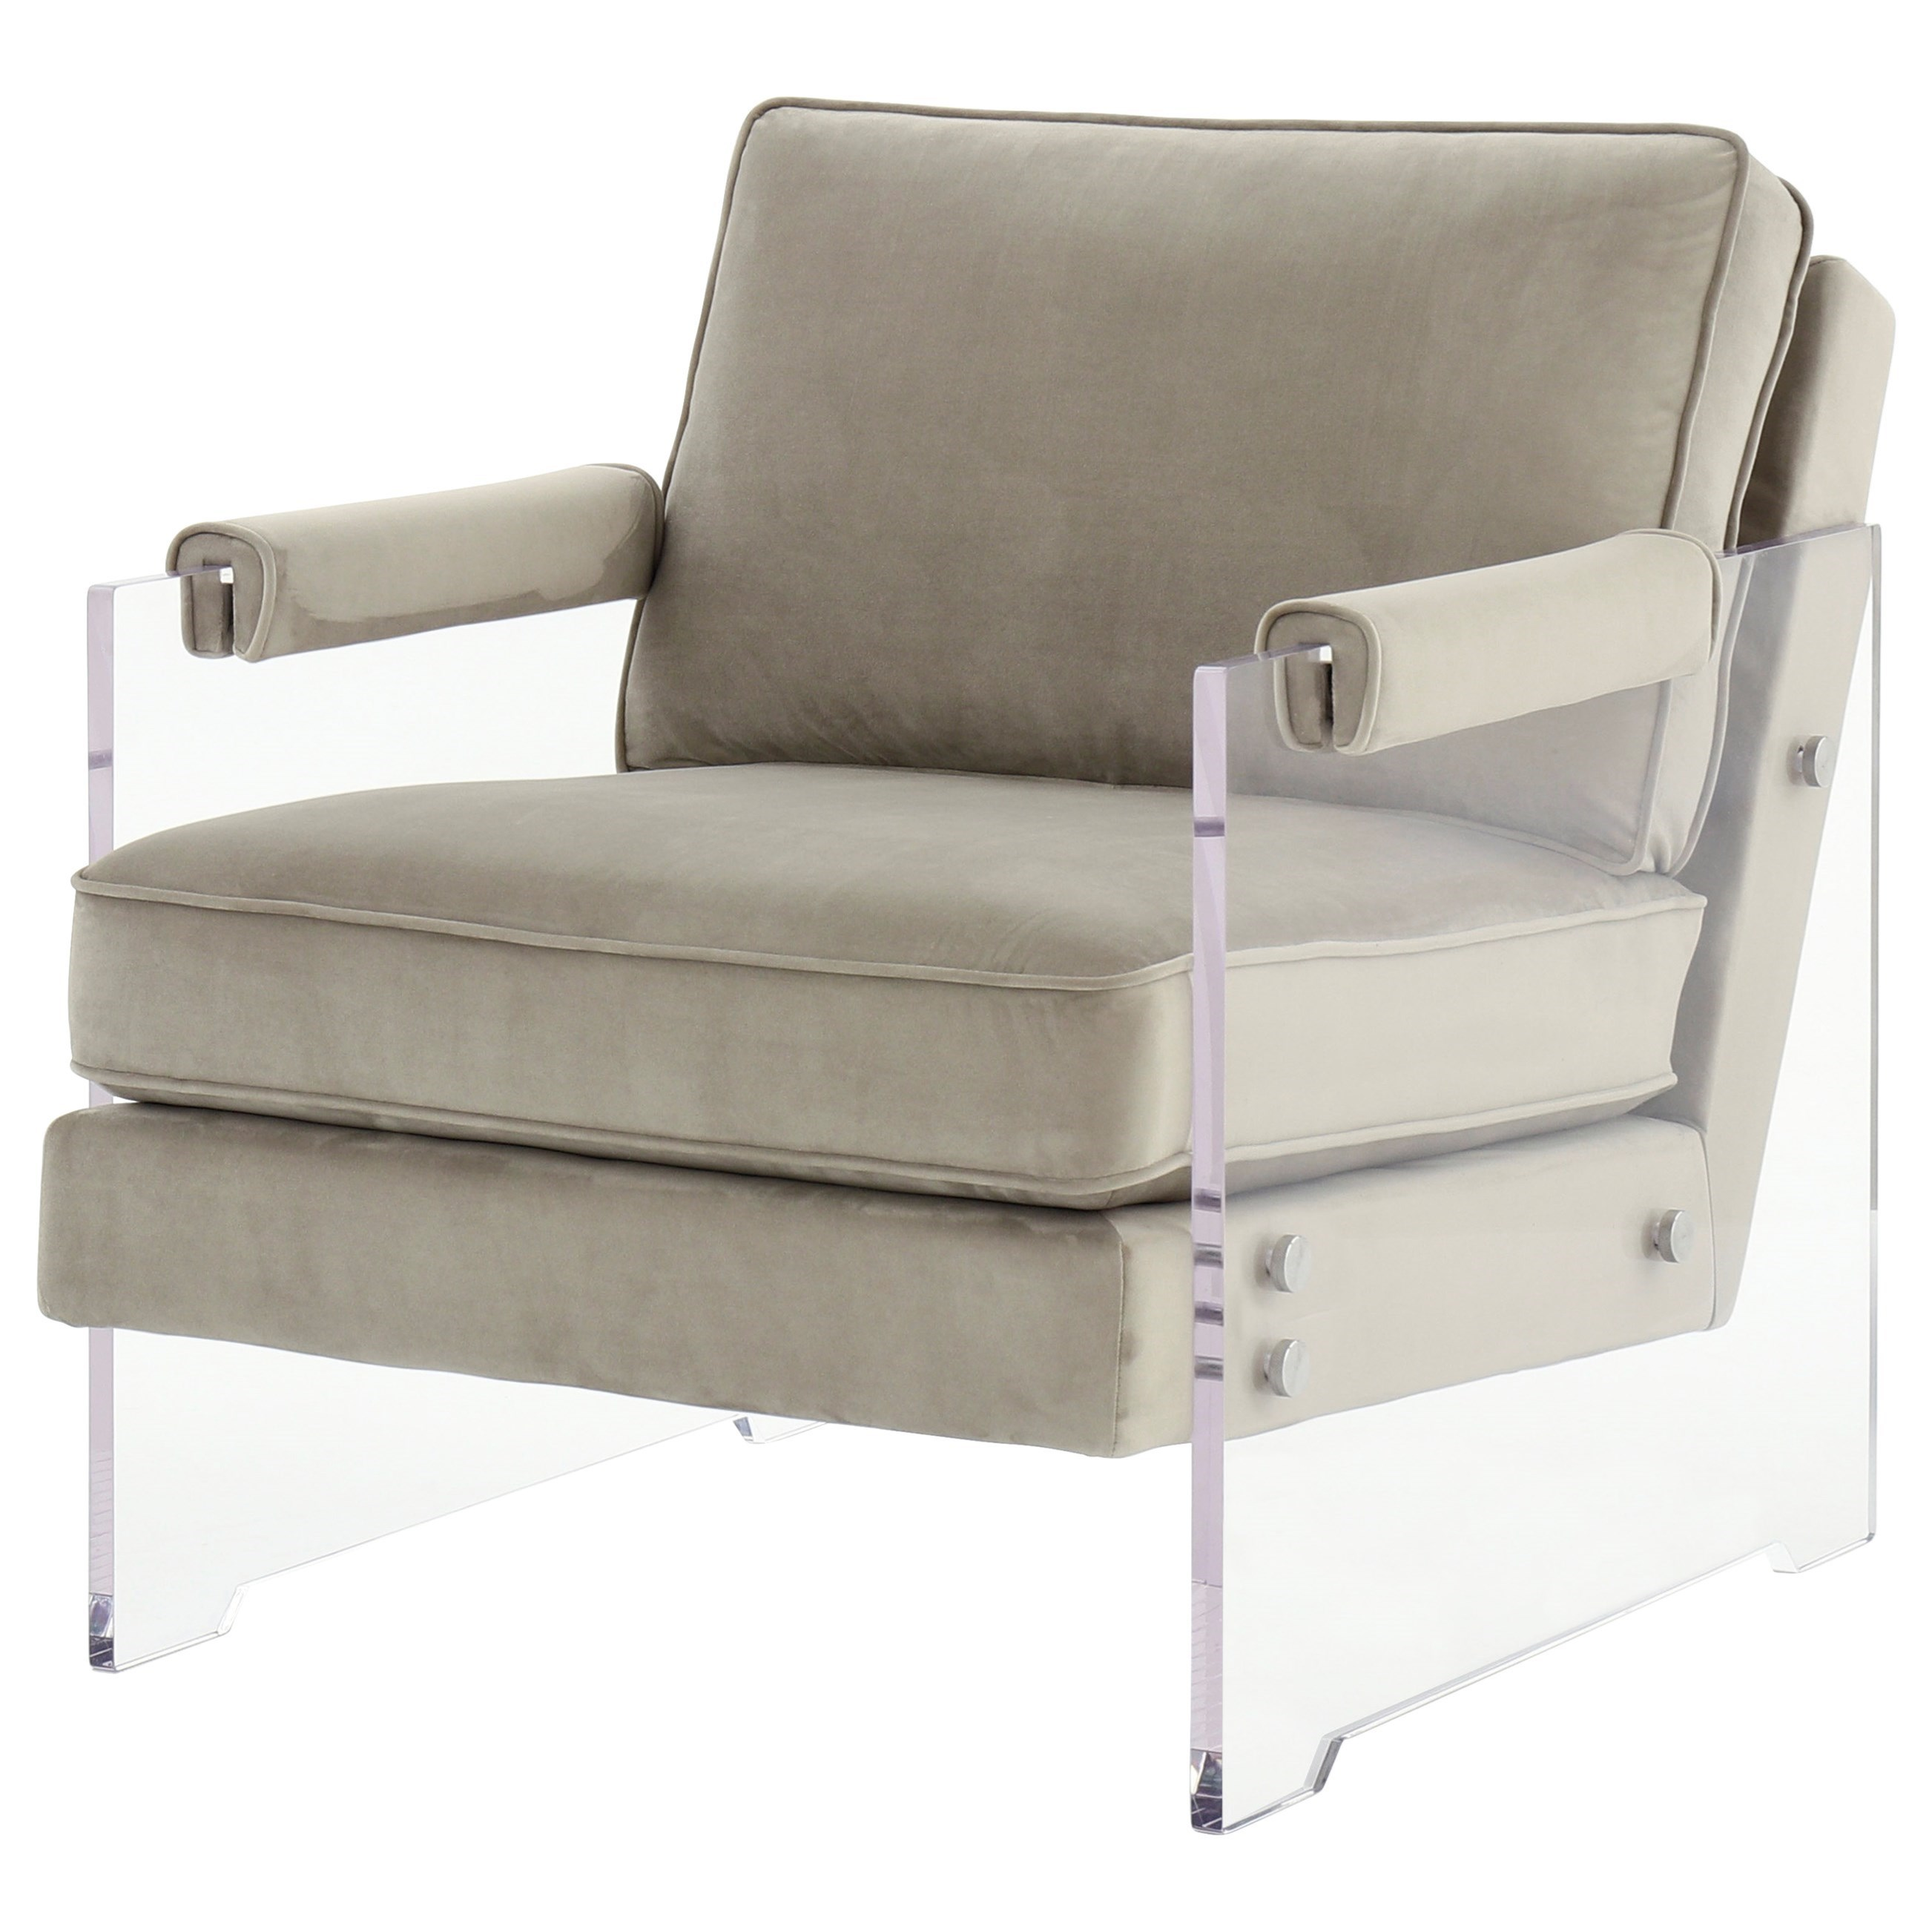 Avonley Accent Chair by Signature Design at Fisher Home Furnishings